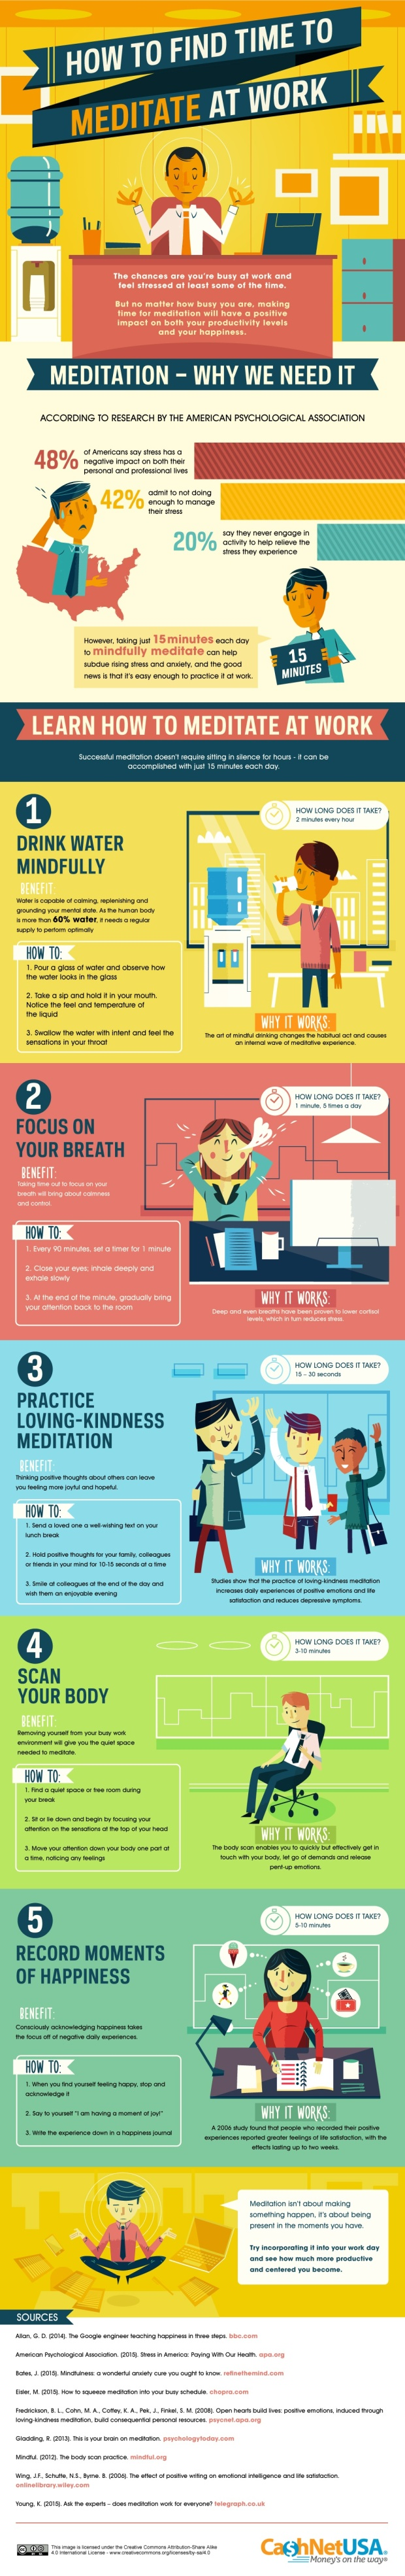 meditation-at-work-infographic